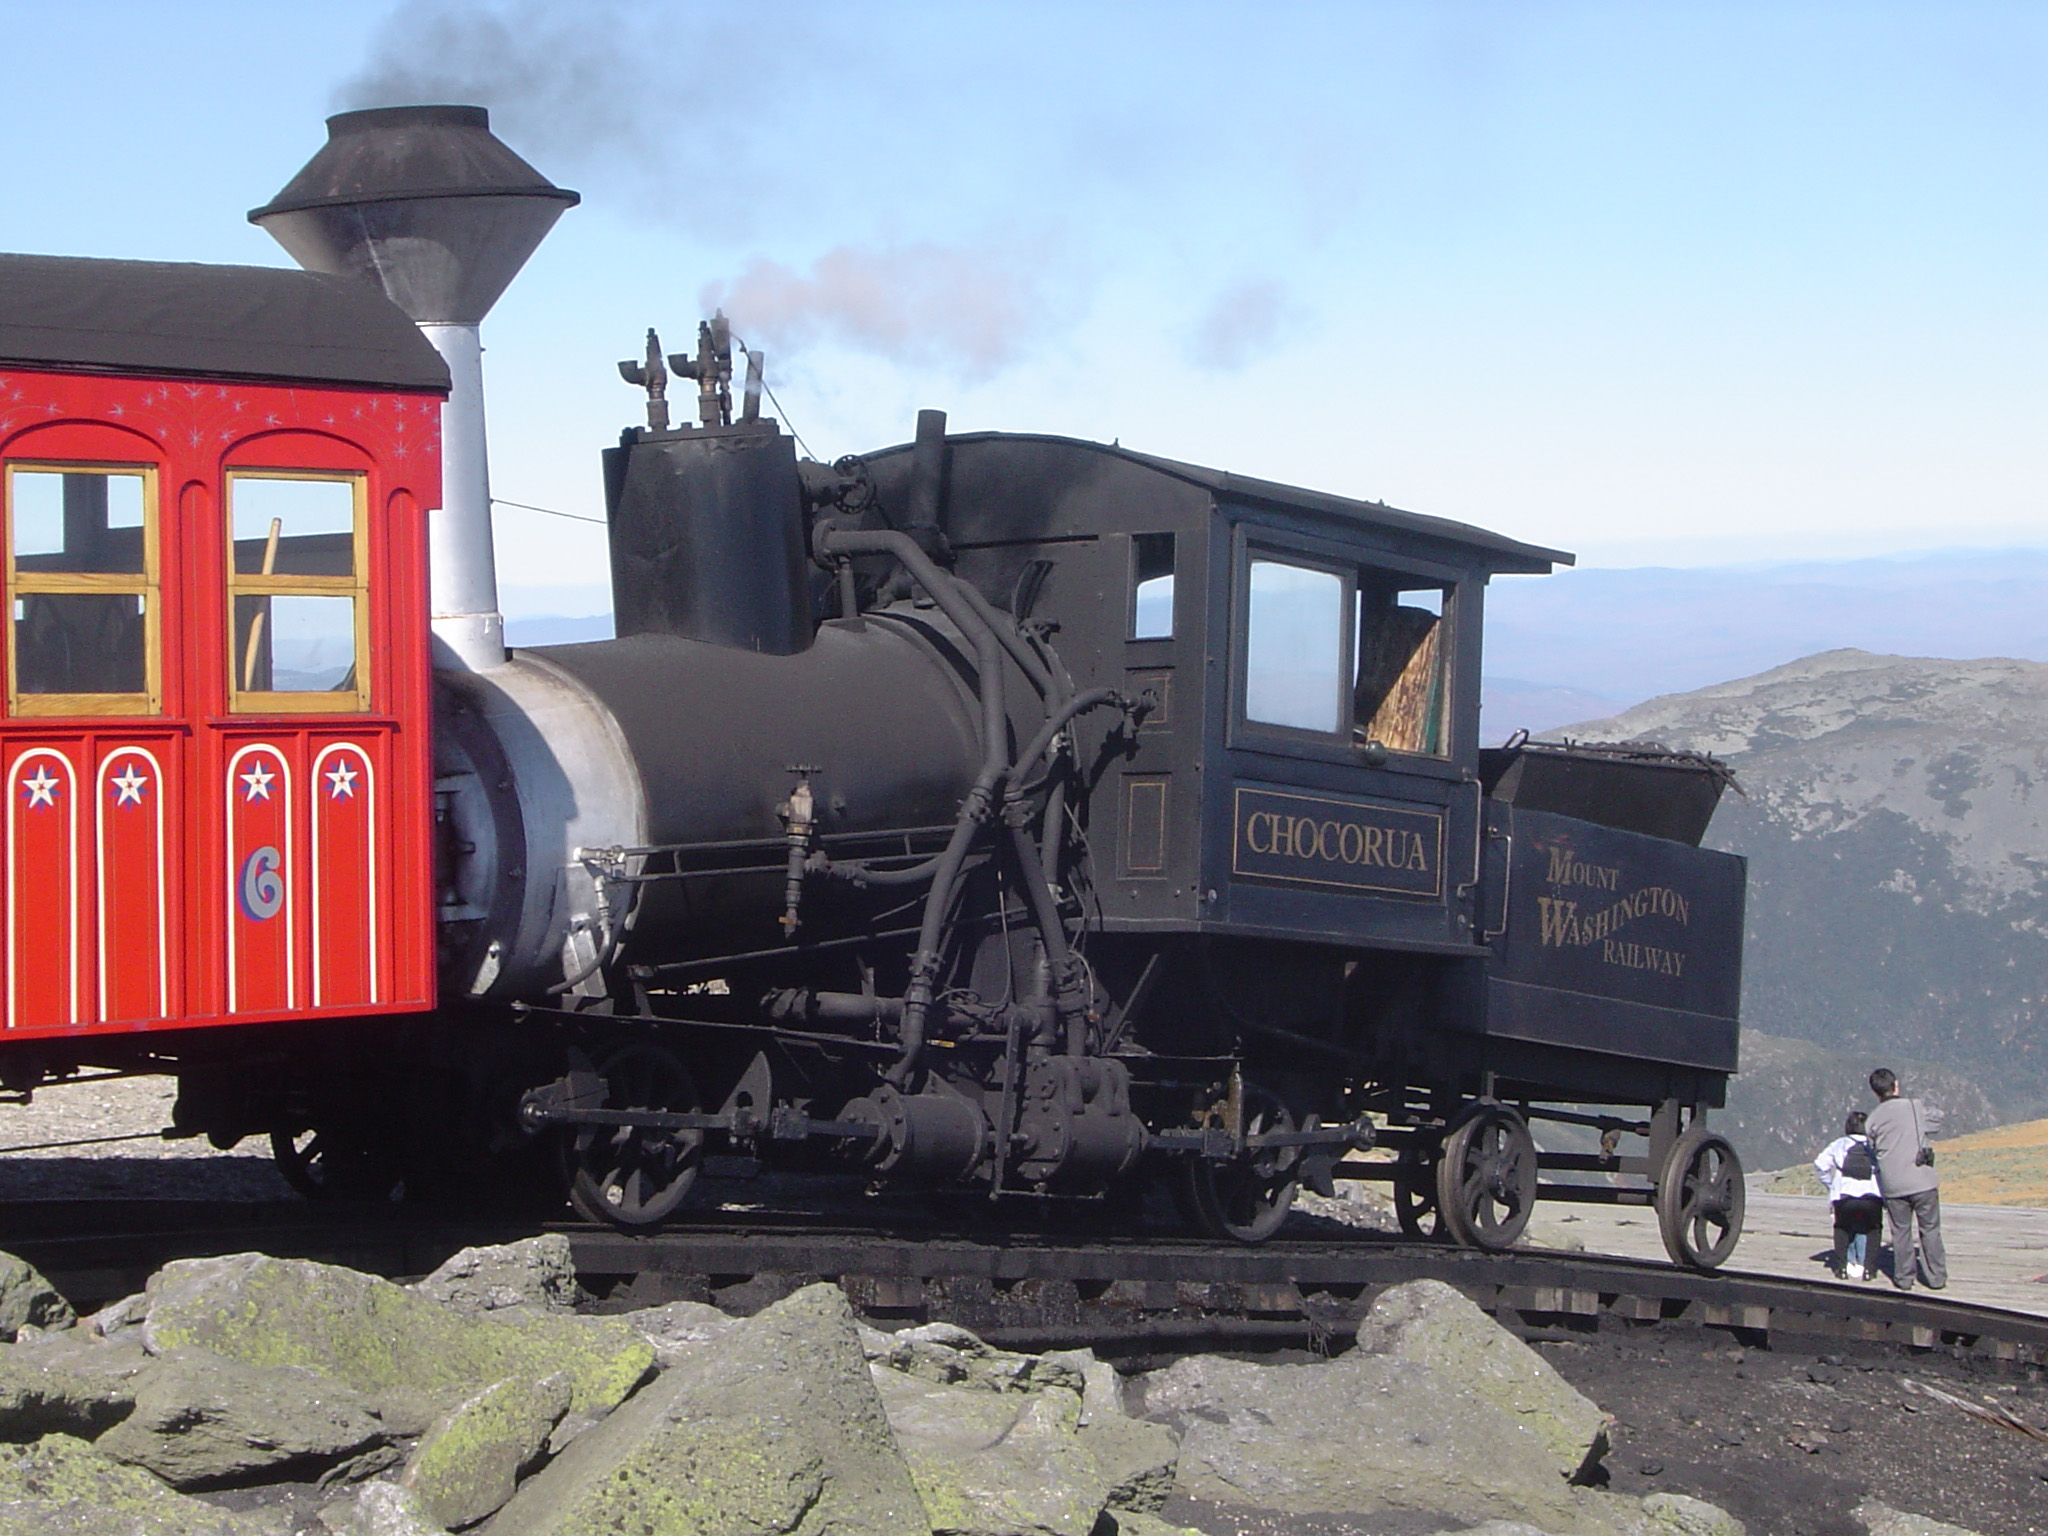 Close up Vintage Locomotive Vehicle at Cog Railway. Isolated on Light Blue Sky Background.